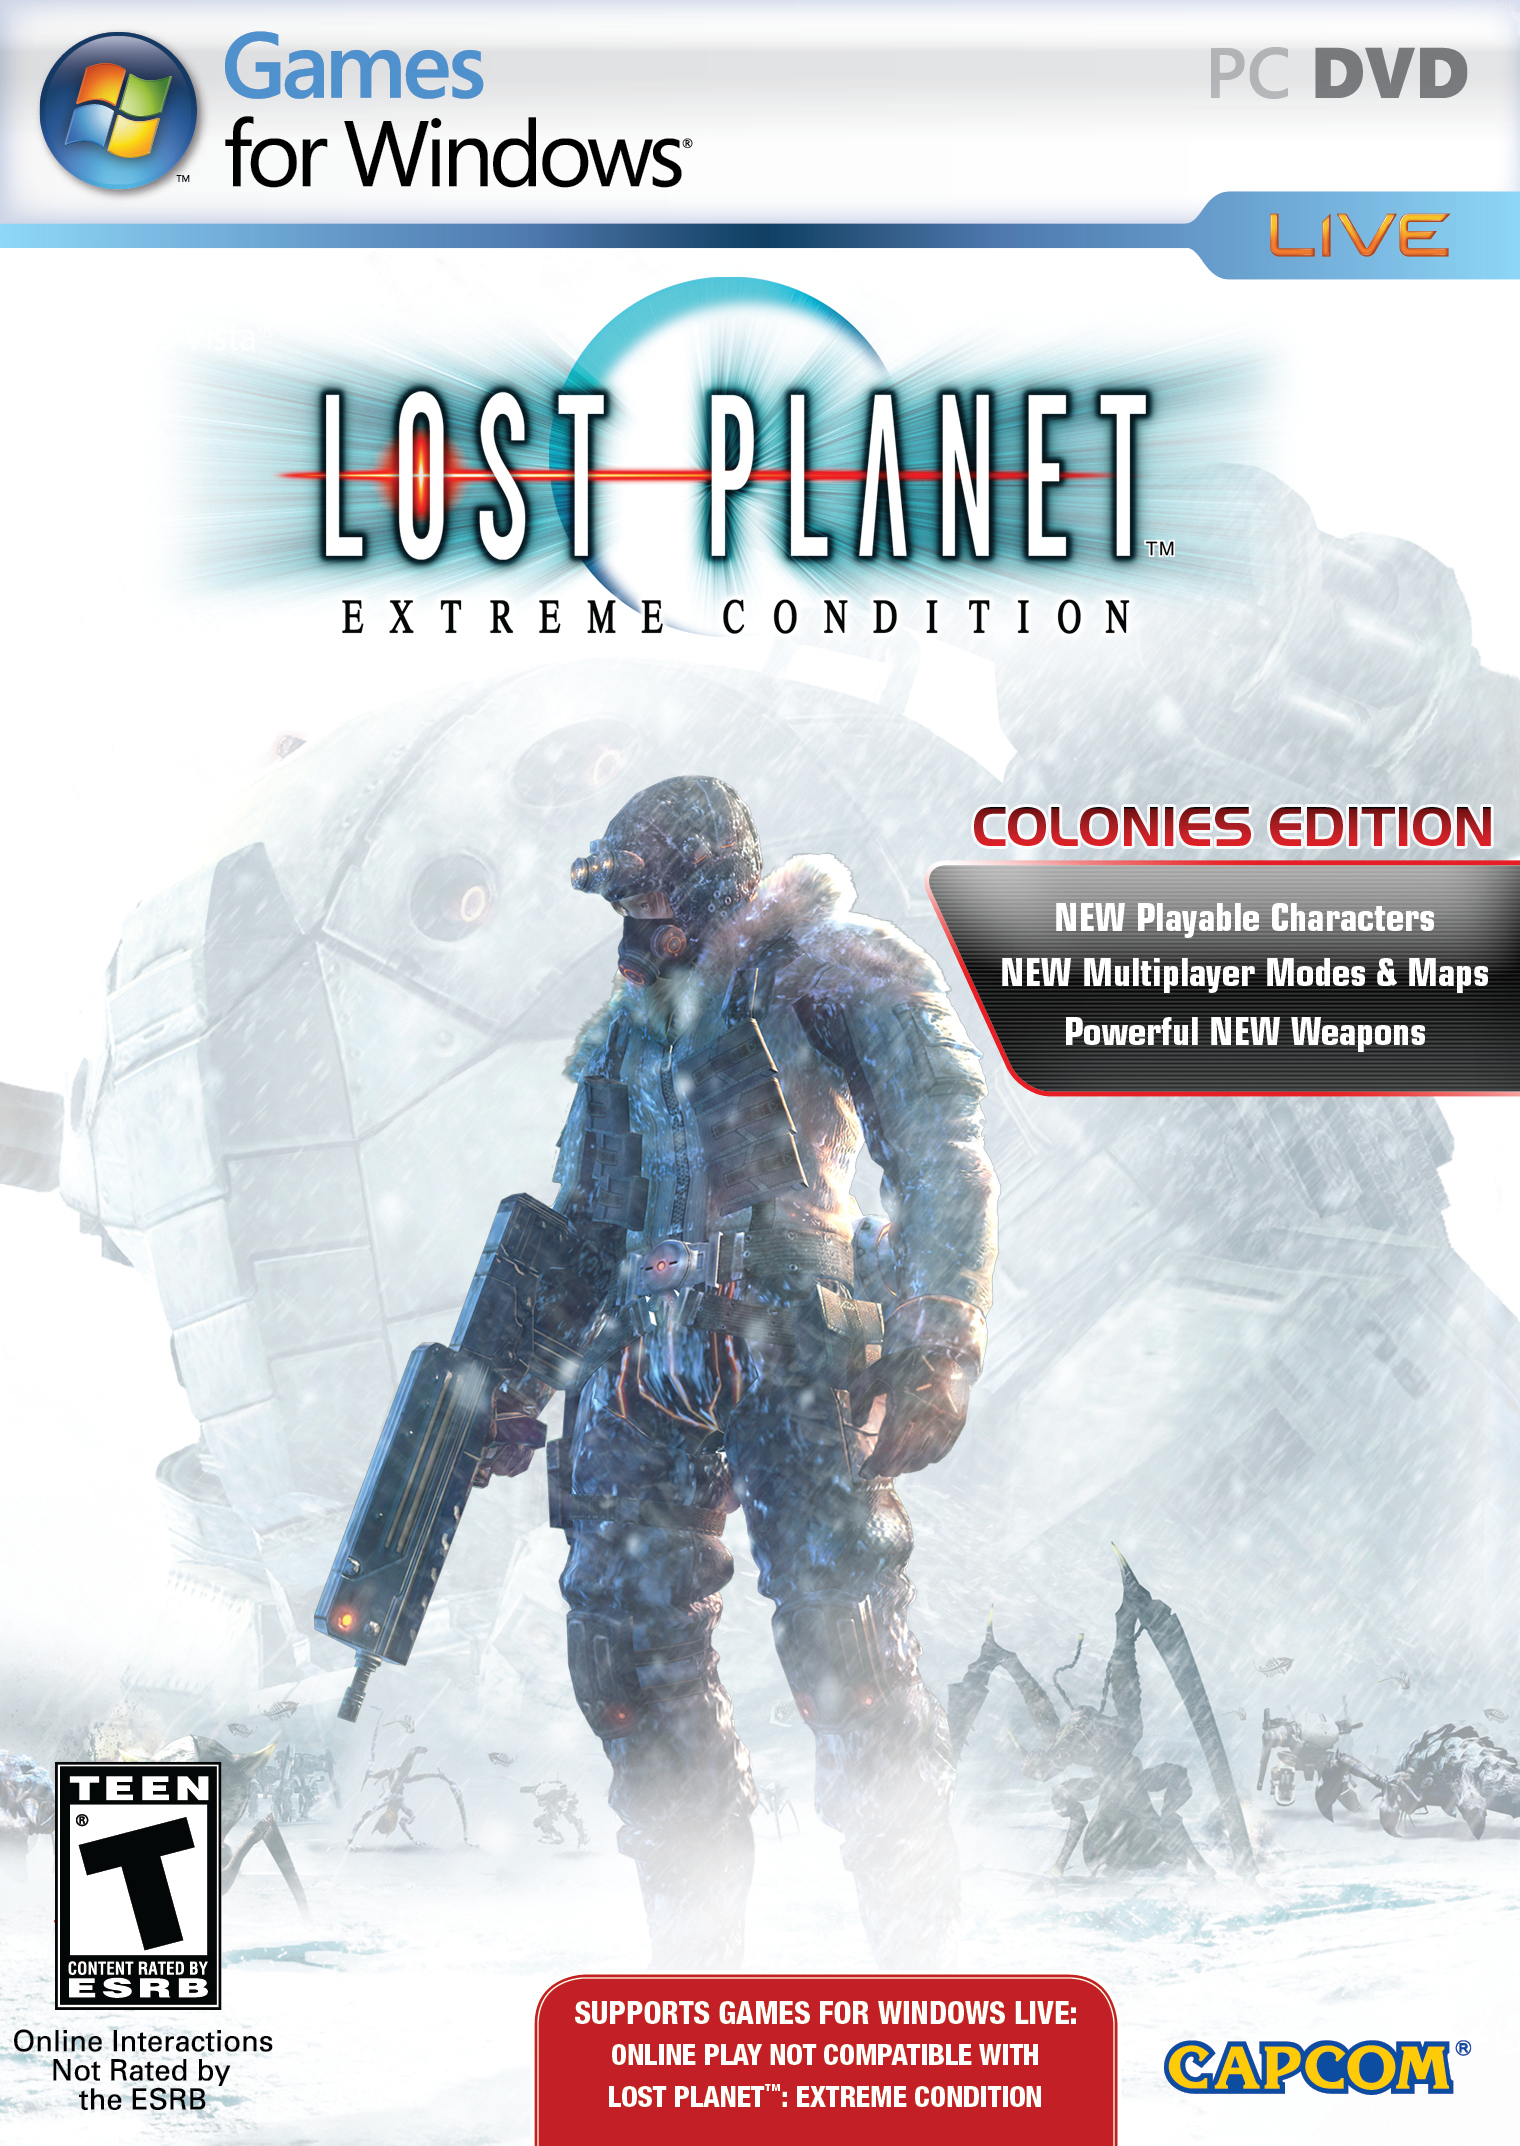 Lost planet extreme condition colonies edition pc trainer